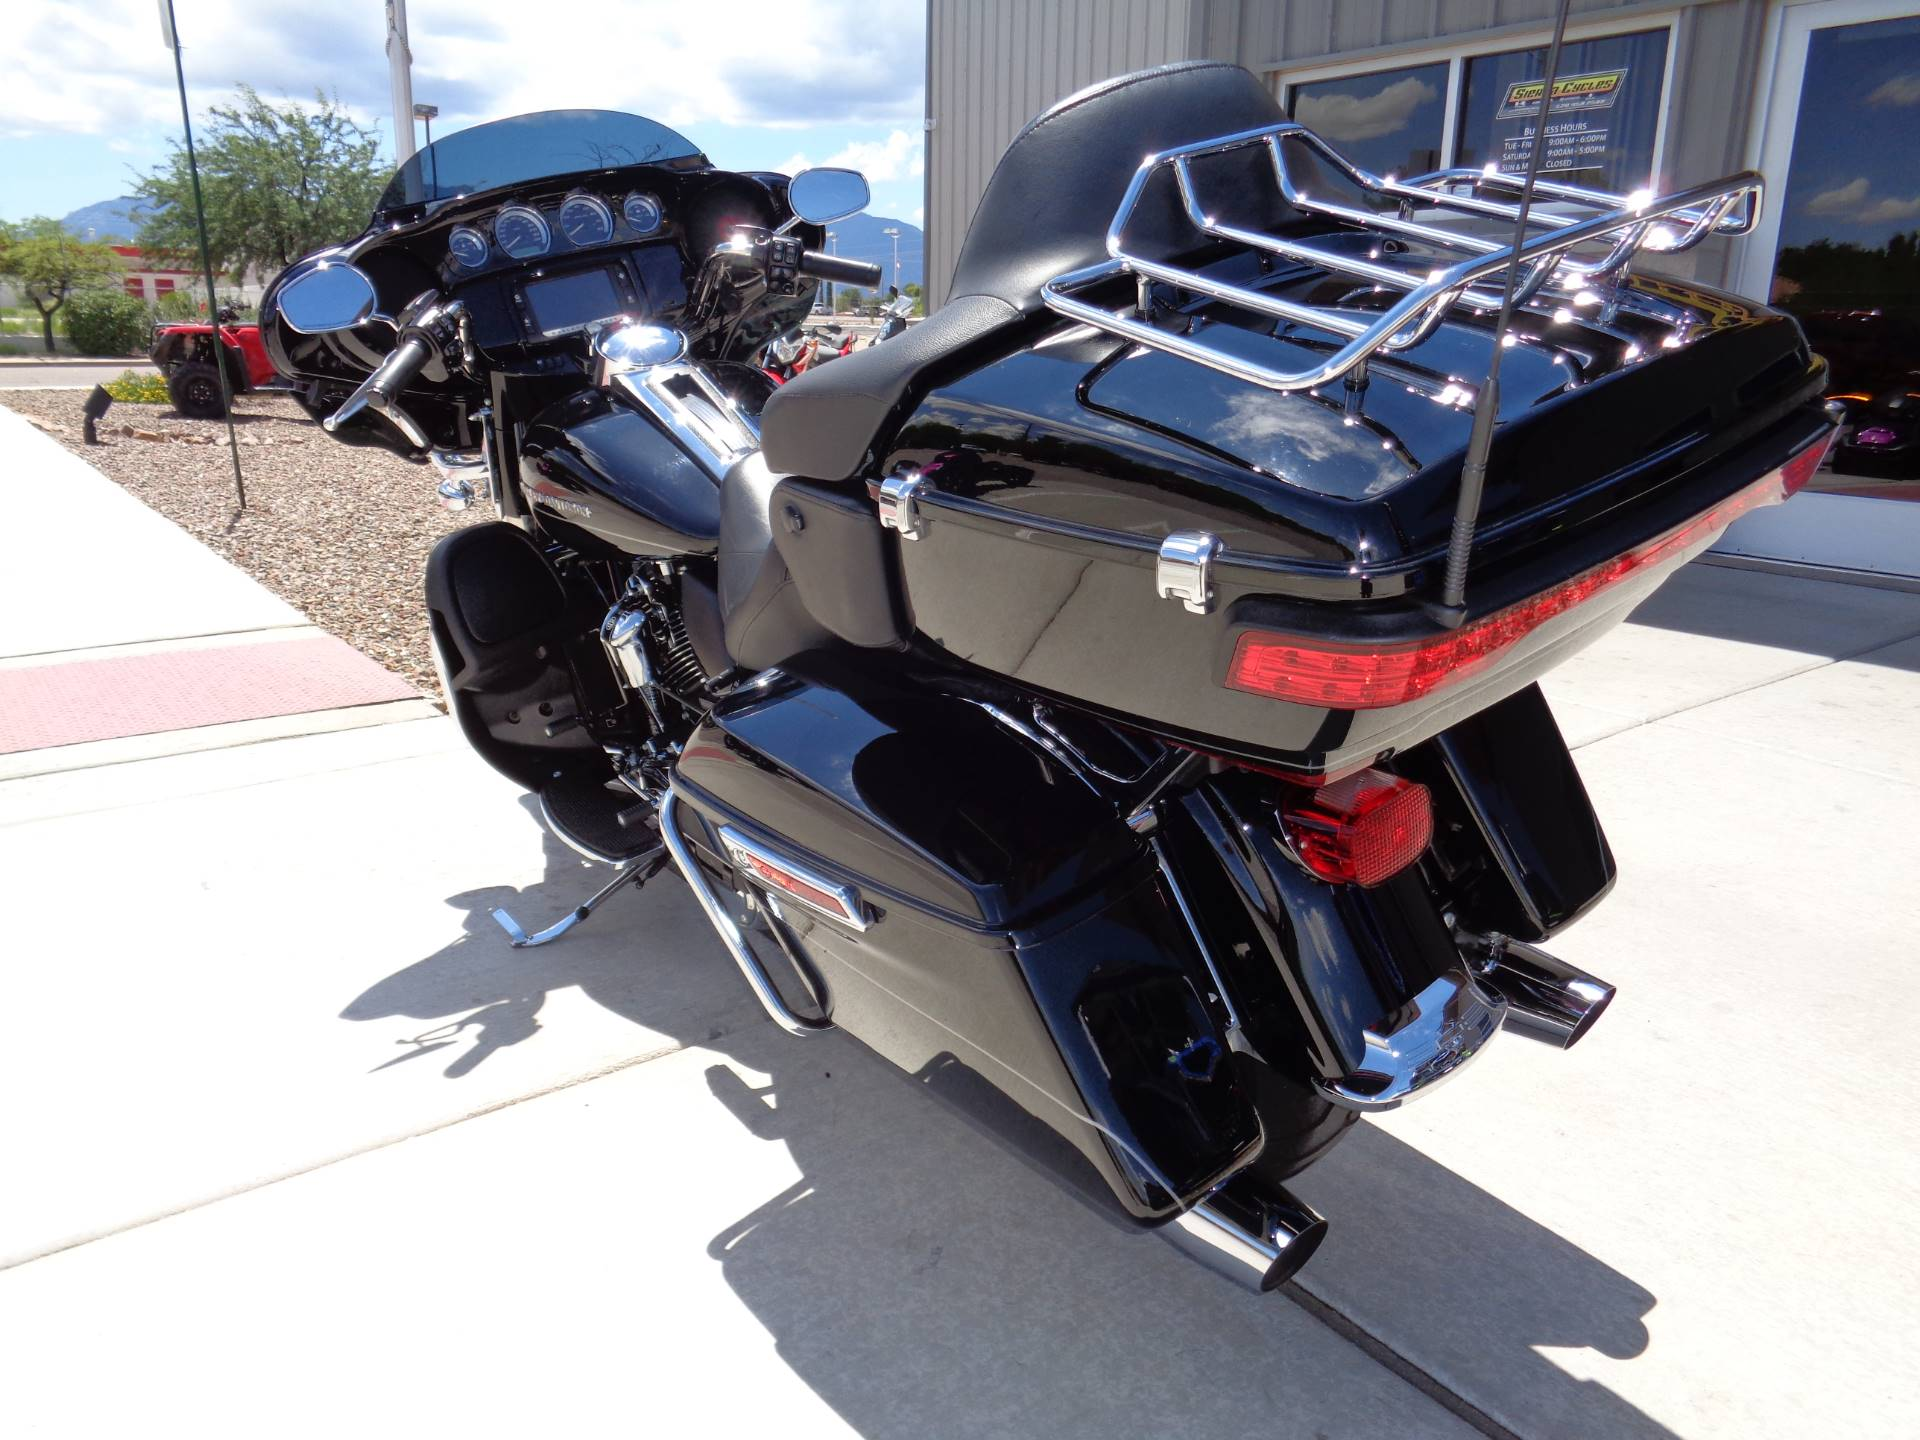 2017 Harley-Davidson Ultra Limited in Sierra Vista, Arizona - Photo 8